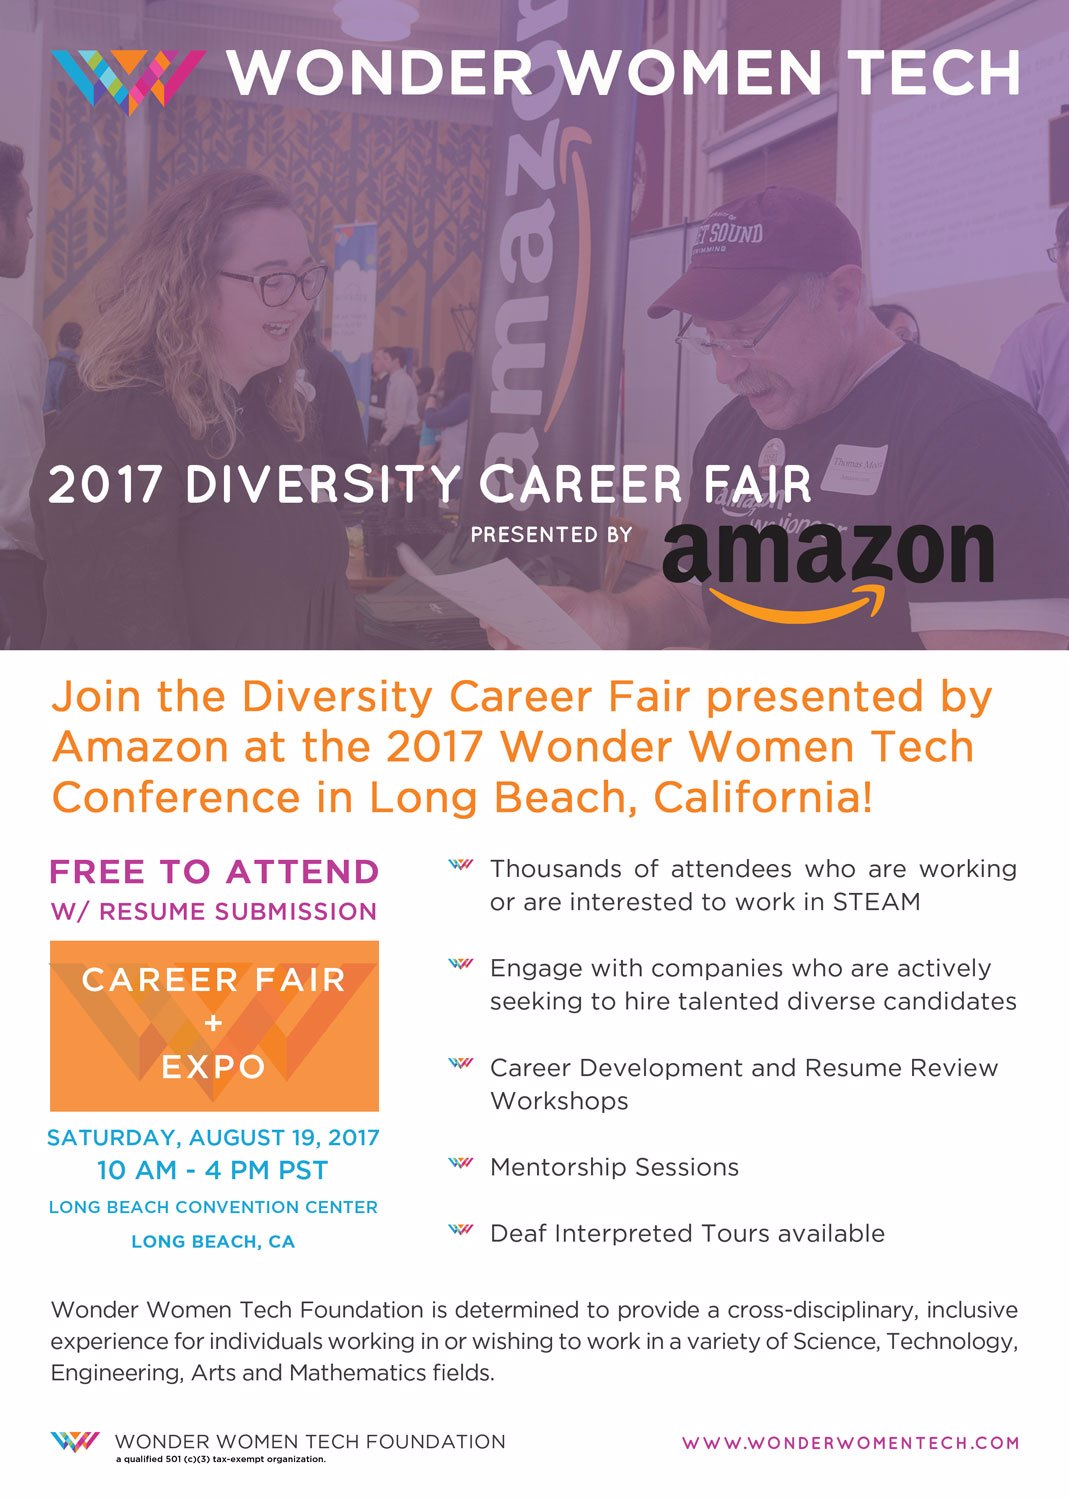 Diversity Career Fair presented by Amazon